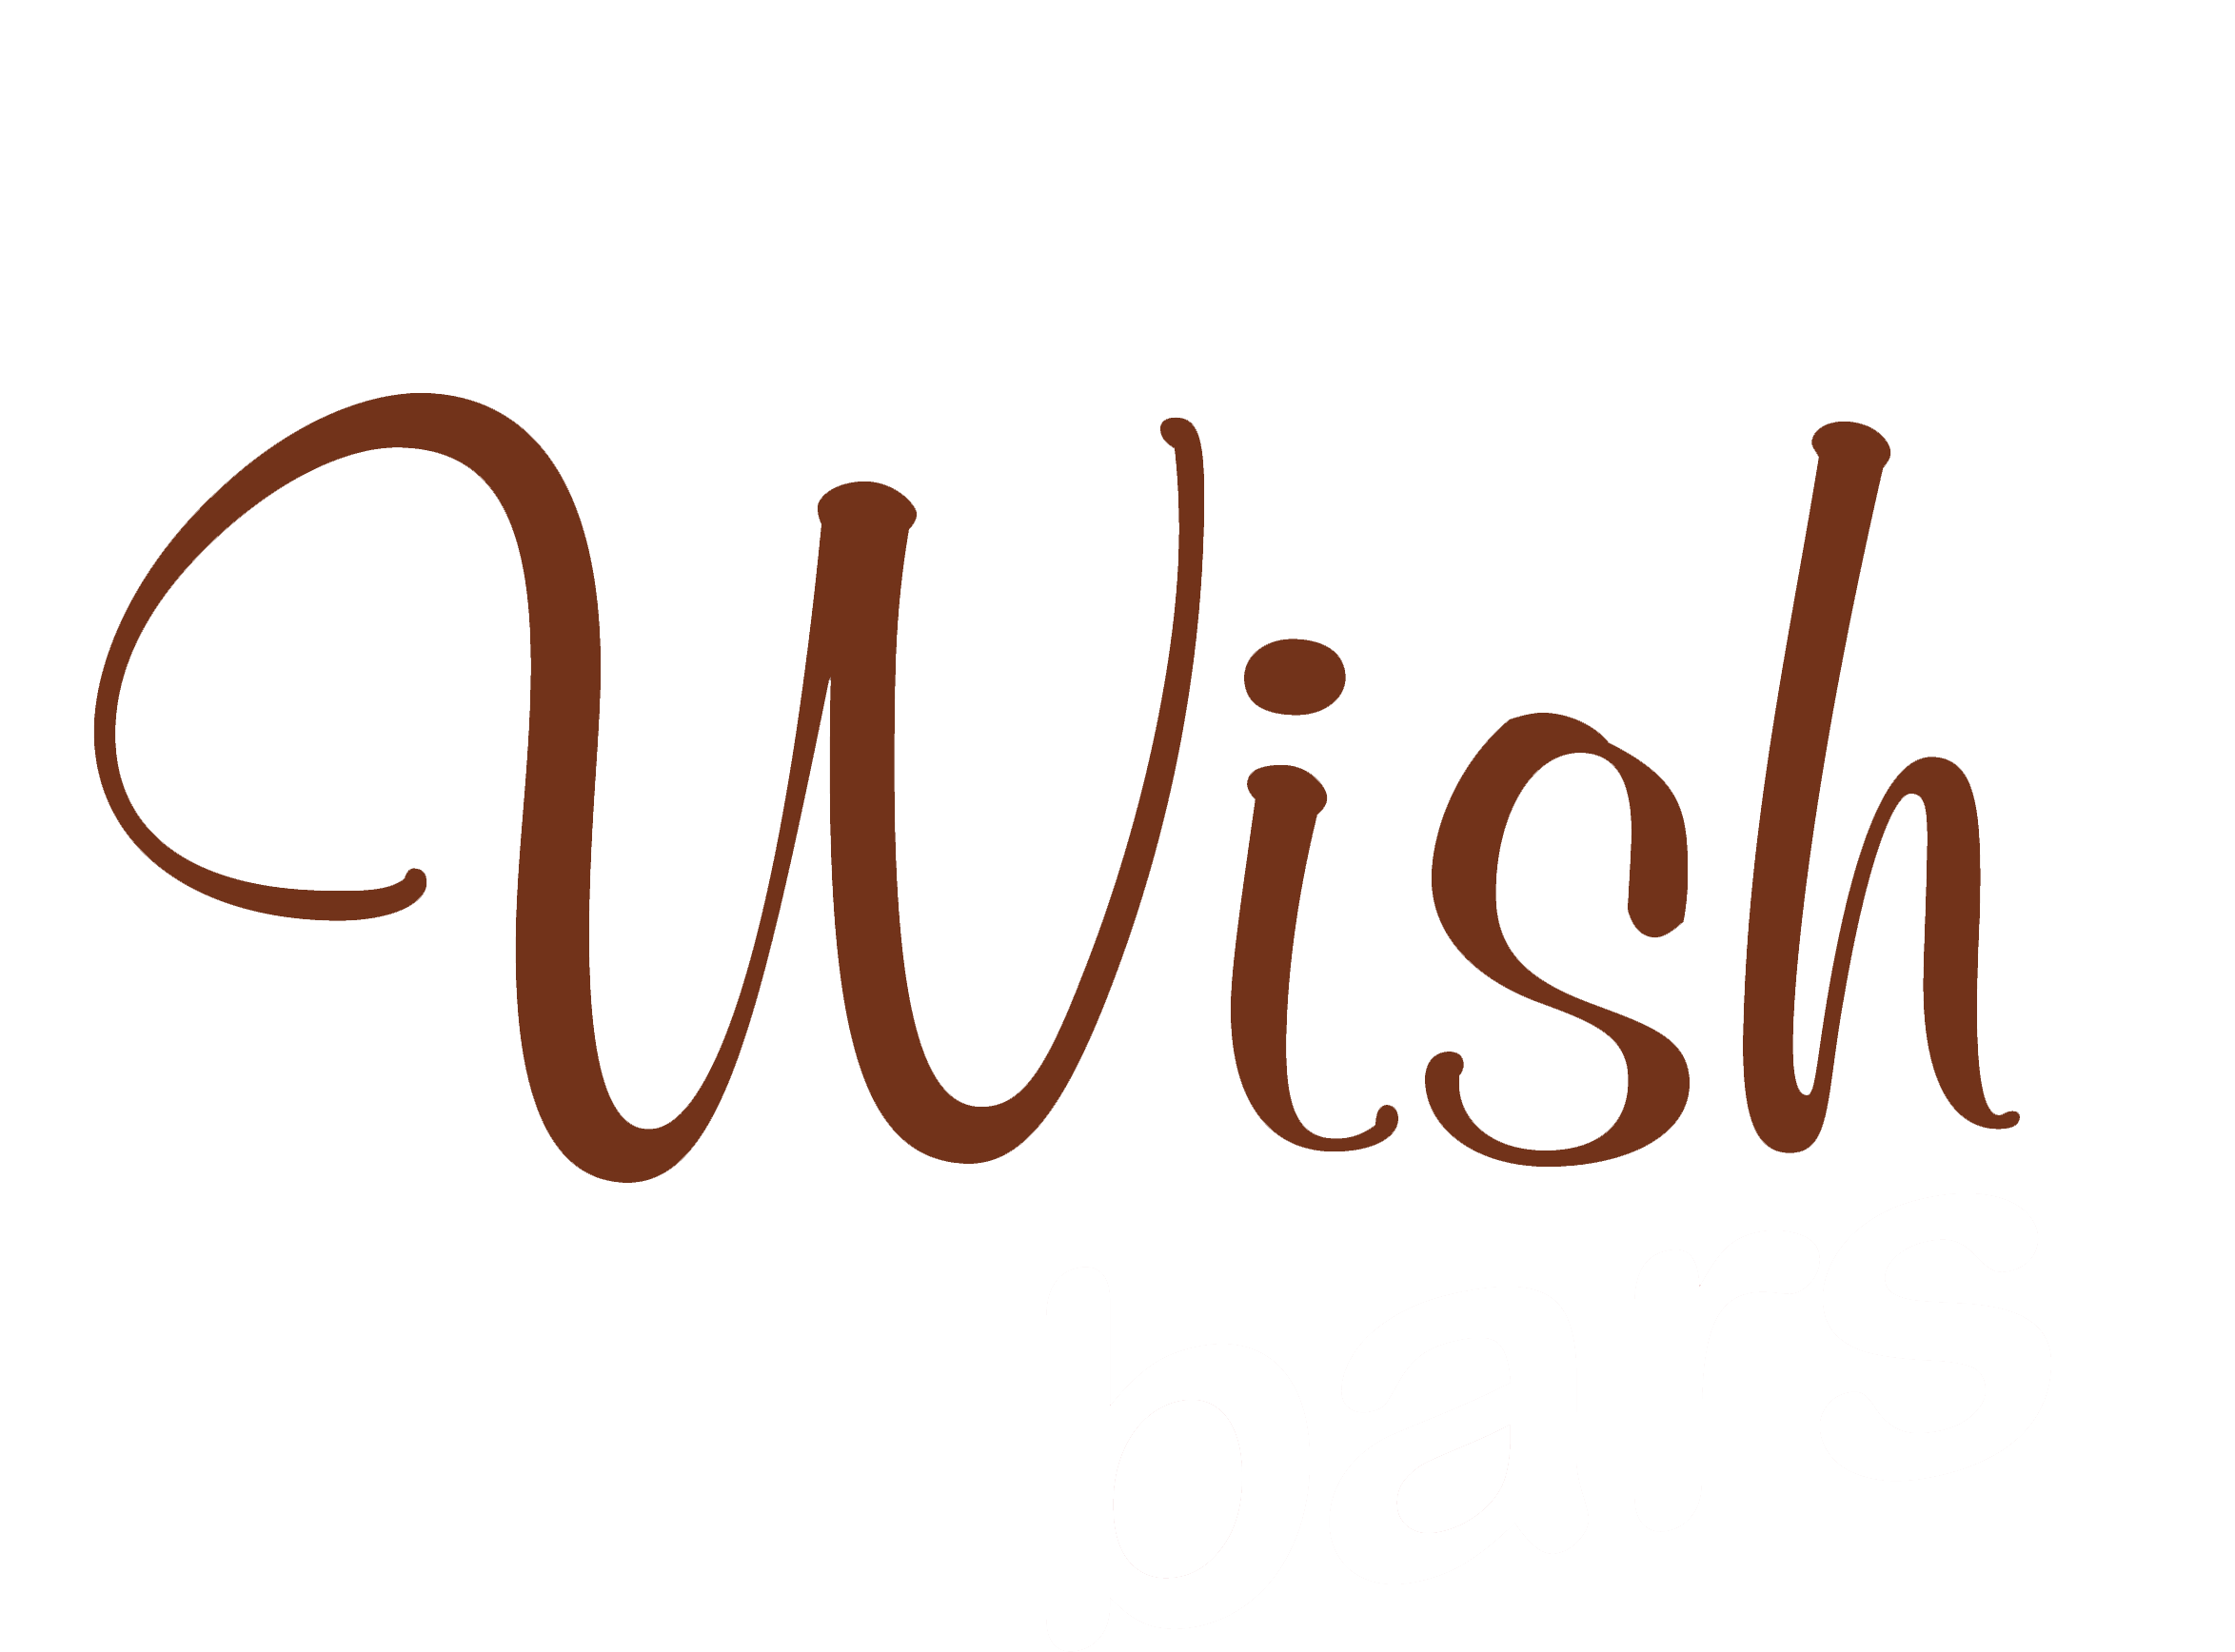 AT CARE (WISH) logo